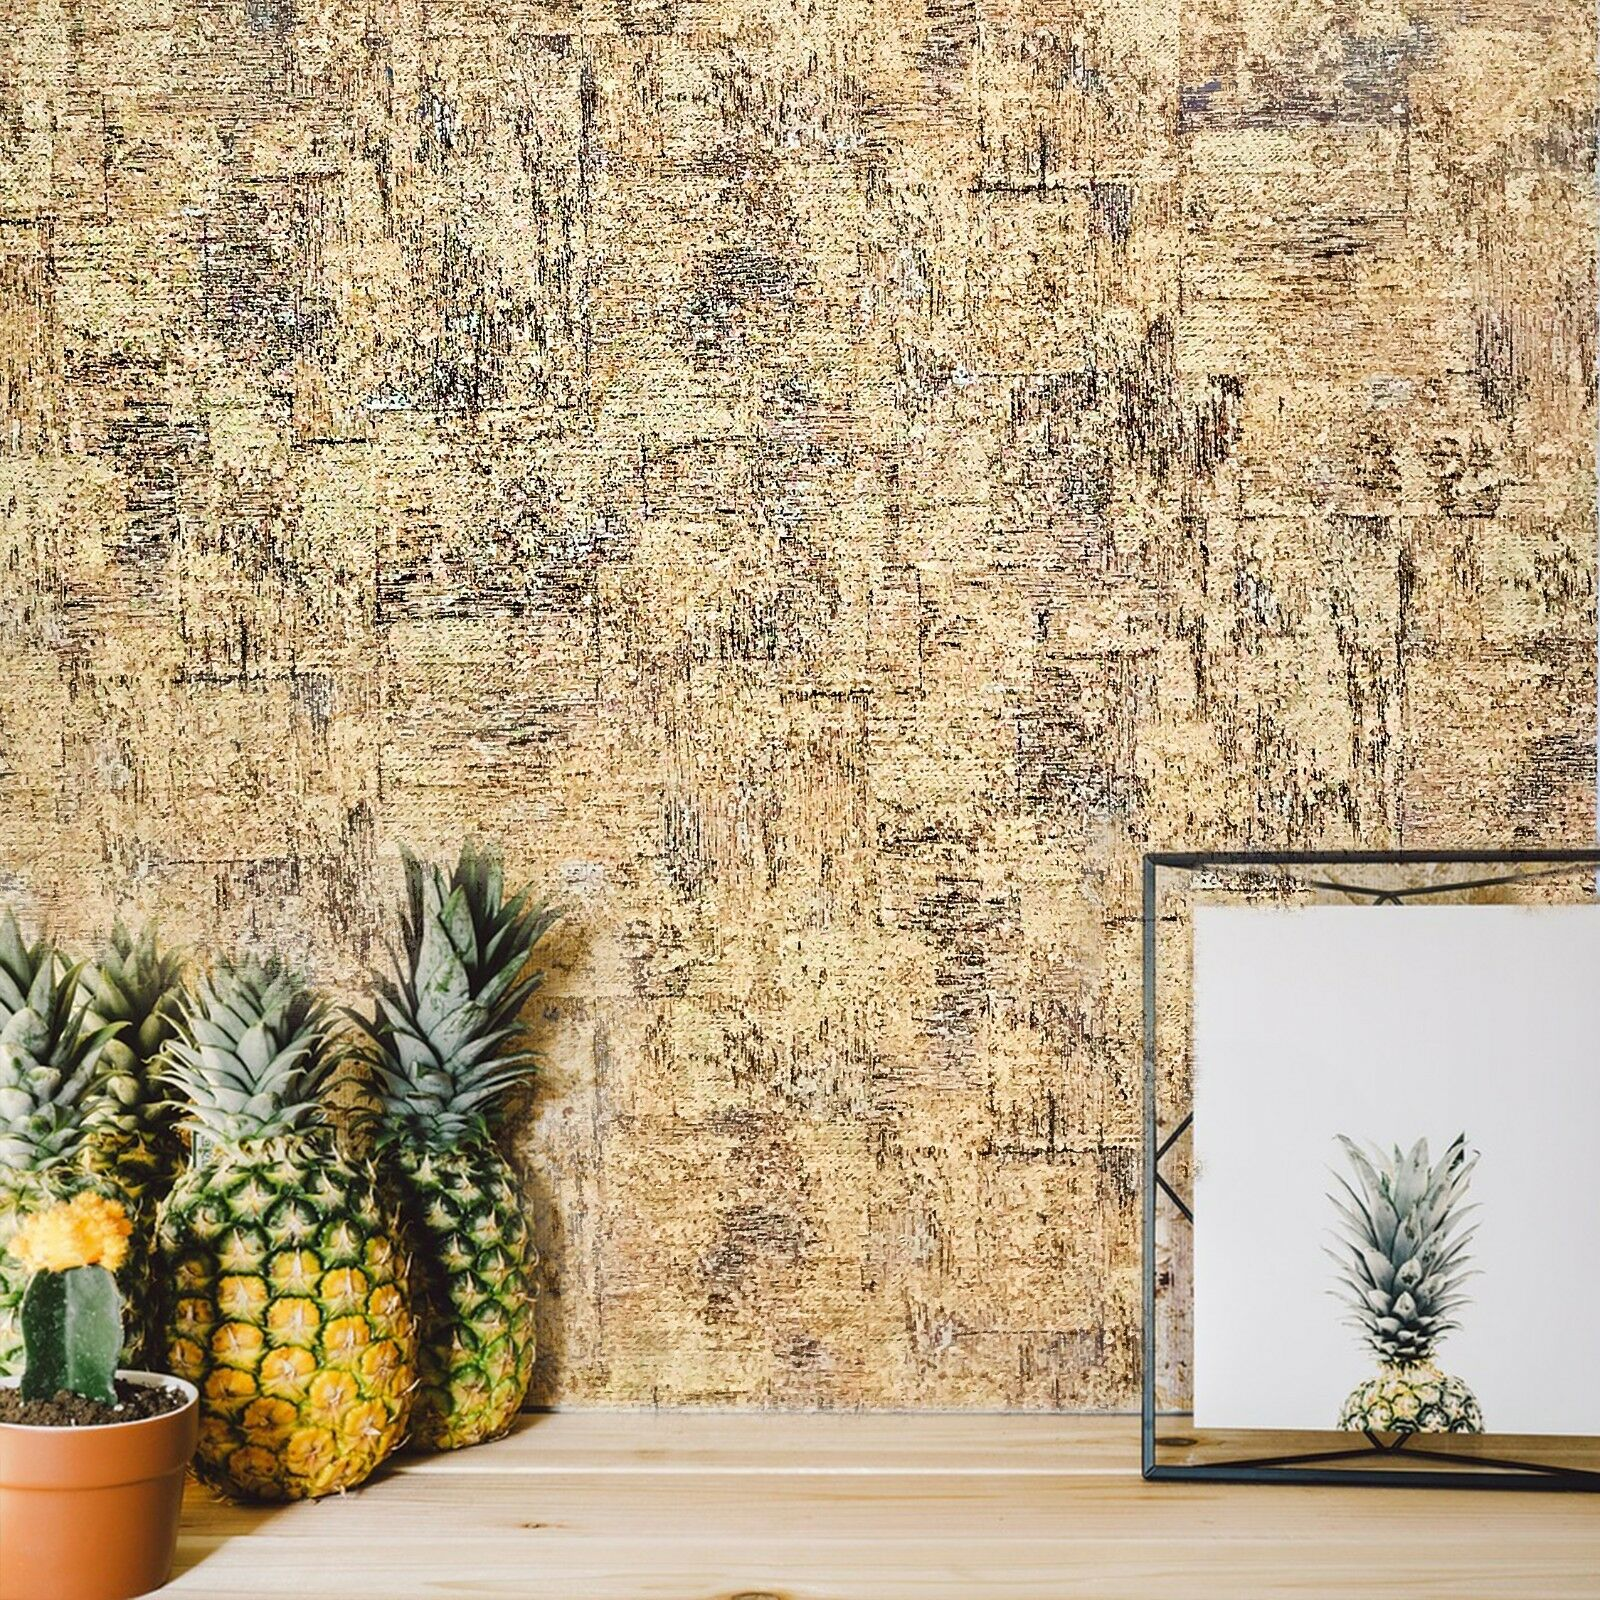 NON-WOVEN WALLPAPER PLAIN rustic cork pattern textured brown wall ...